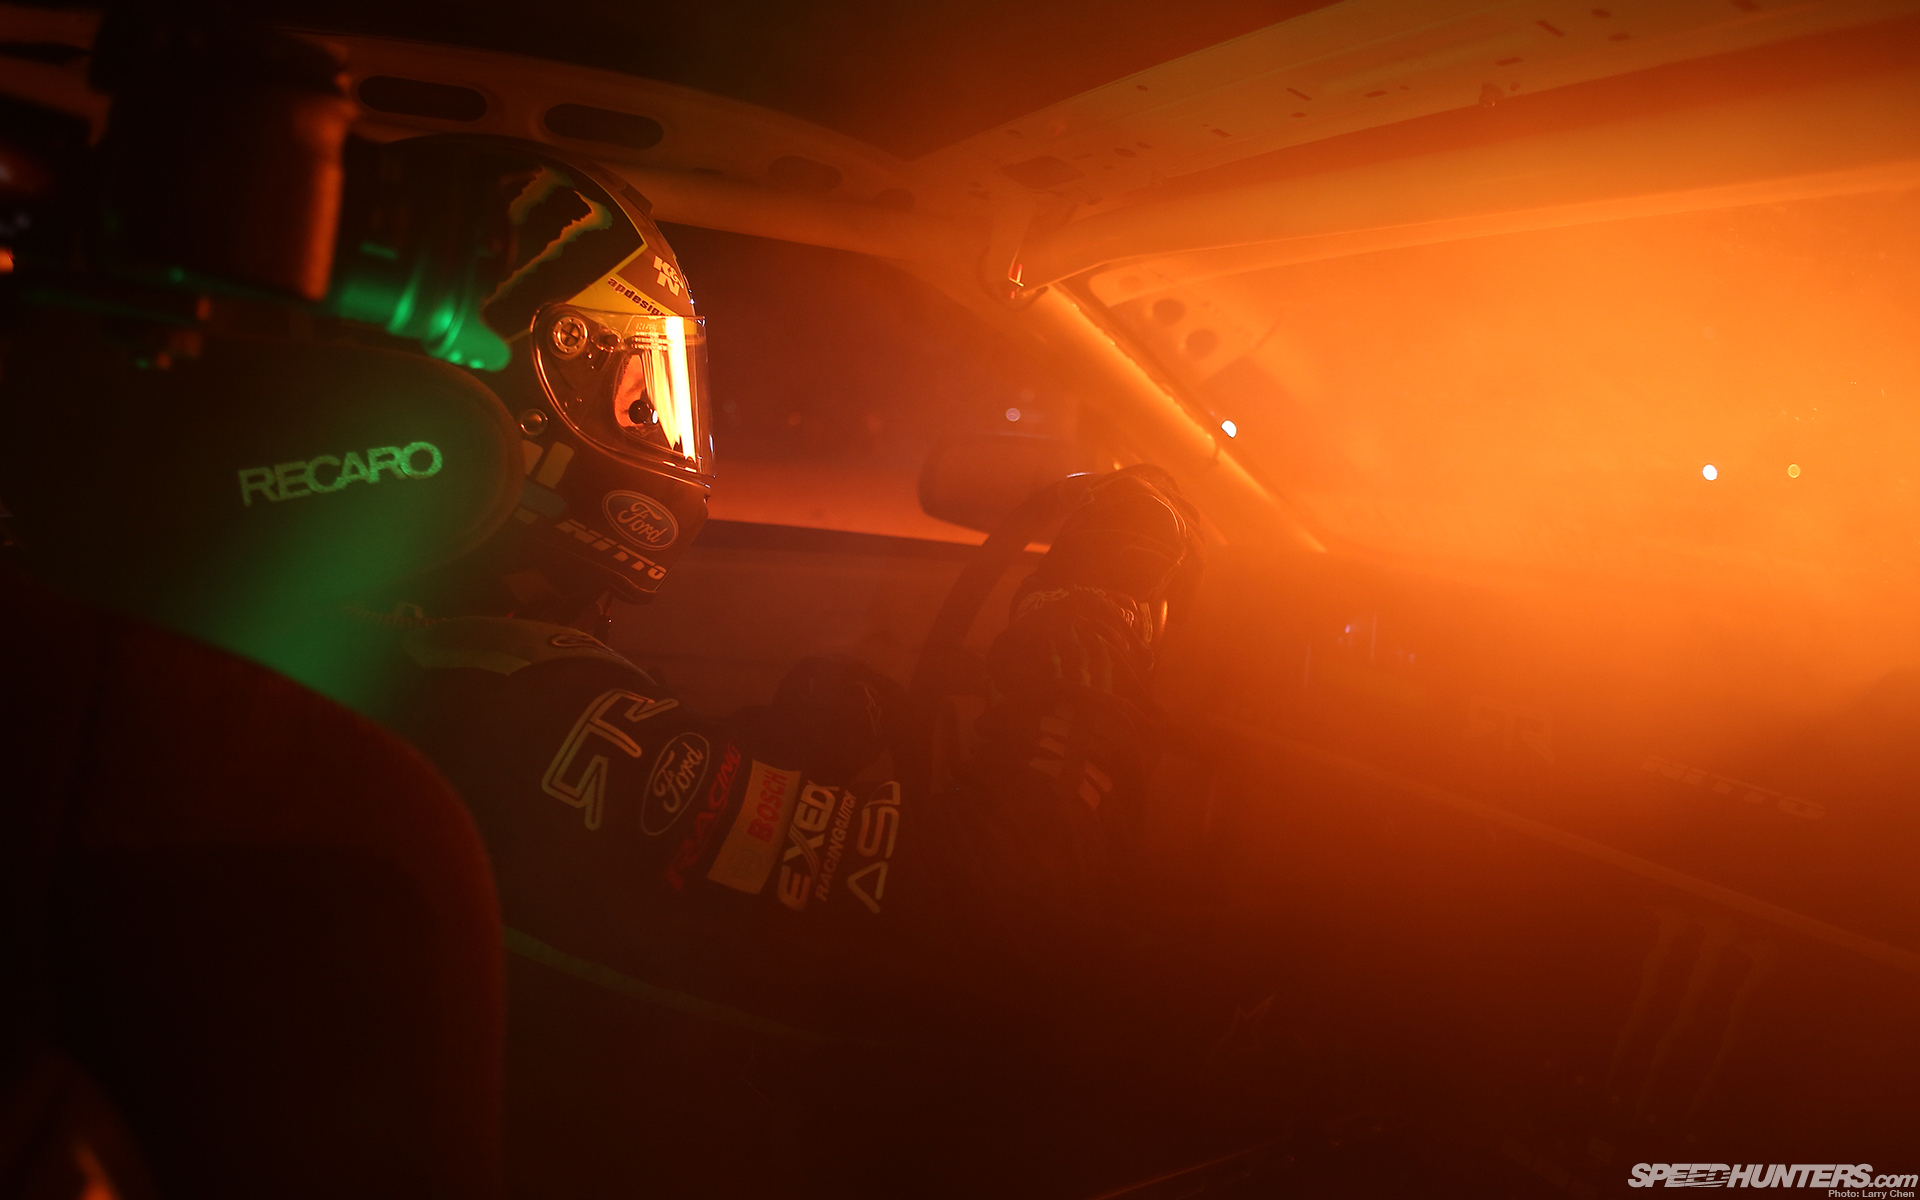 mustang interior race car light ford tuning drift glow helmet race racing wallpaper 1920x1200. Black Bedroom Furniture Sets. Home Design Ideas